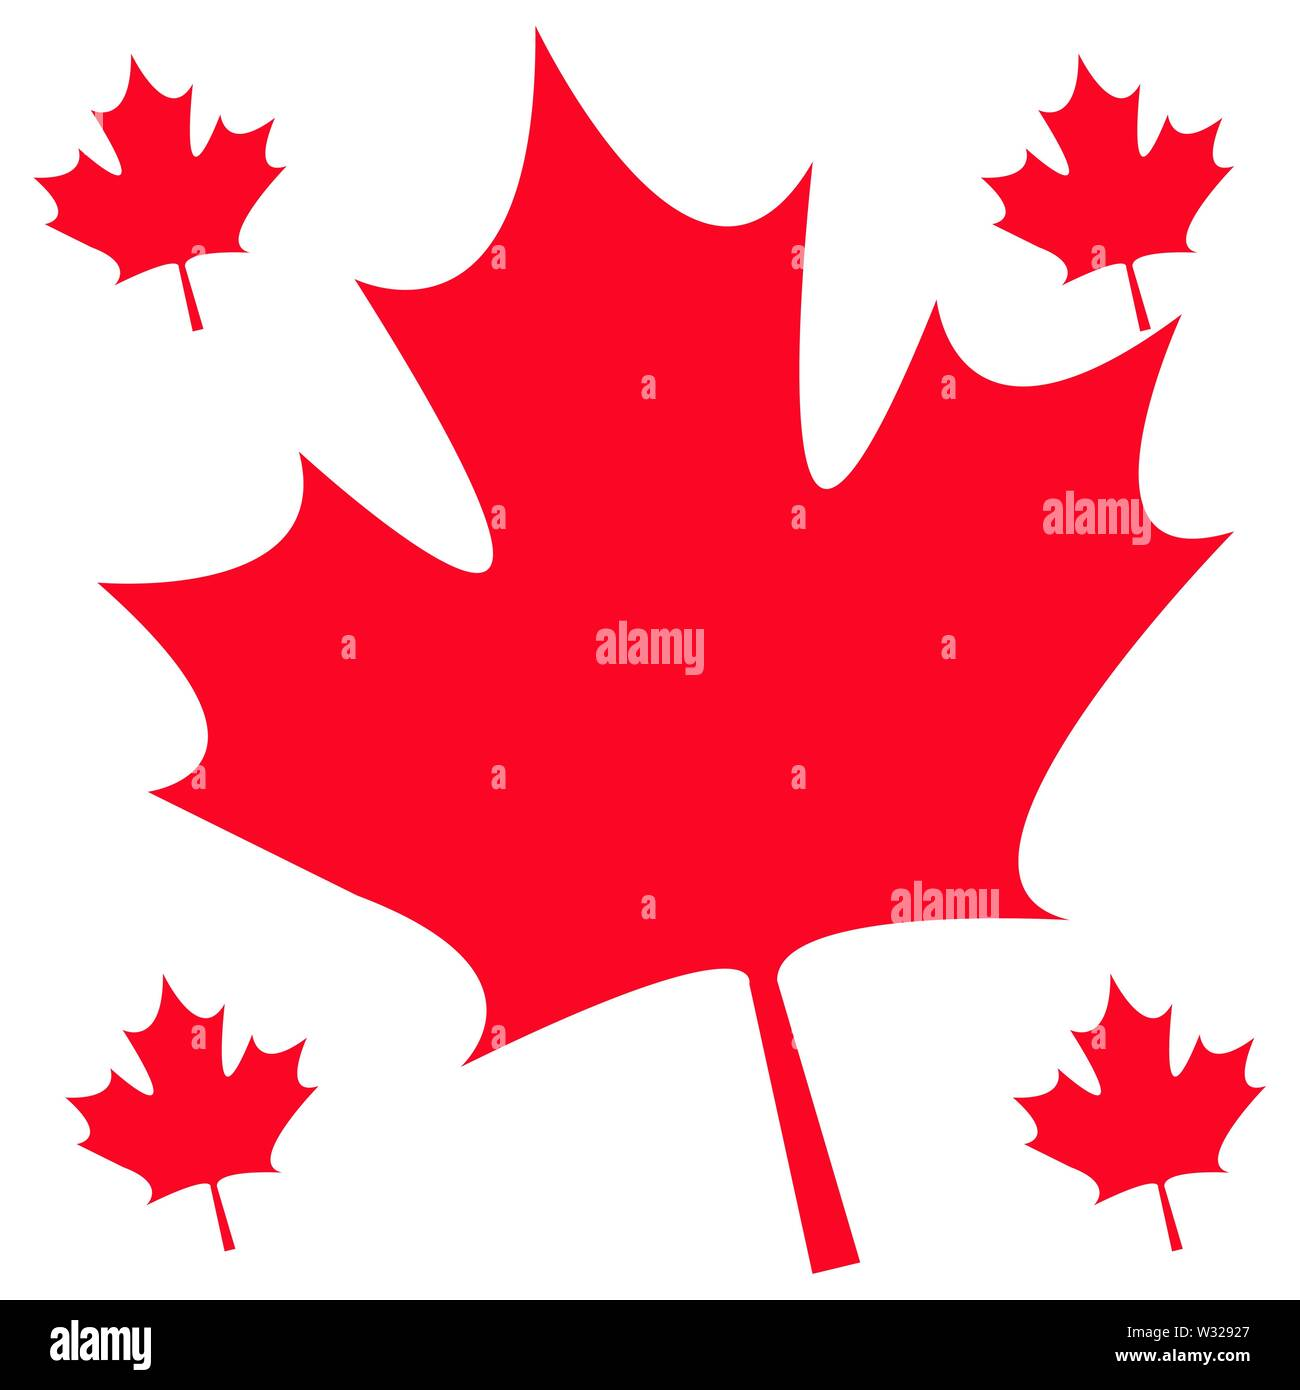 Pattern Of Leafs Maple Canada Vector Illustration Design Stock Vector Image Art Alamy